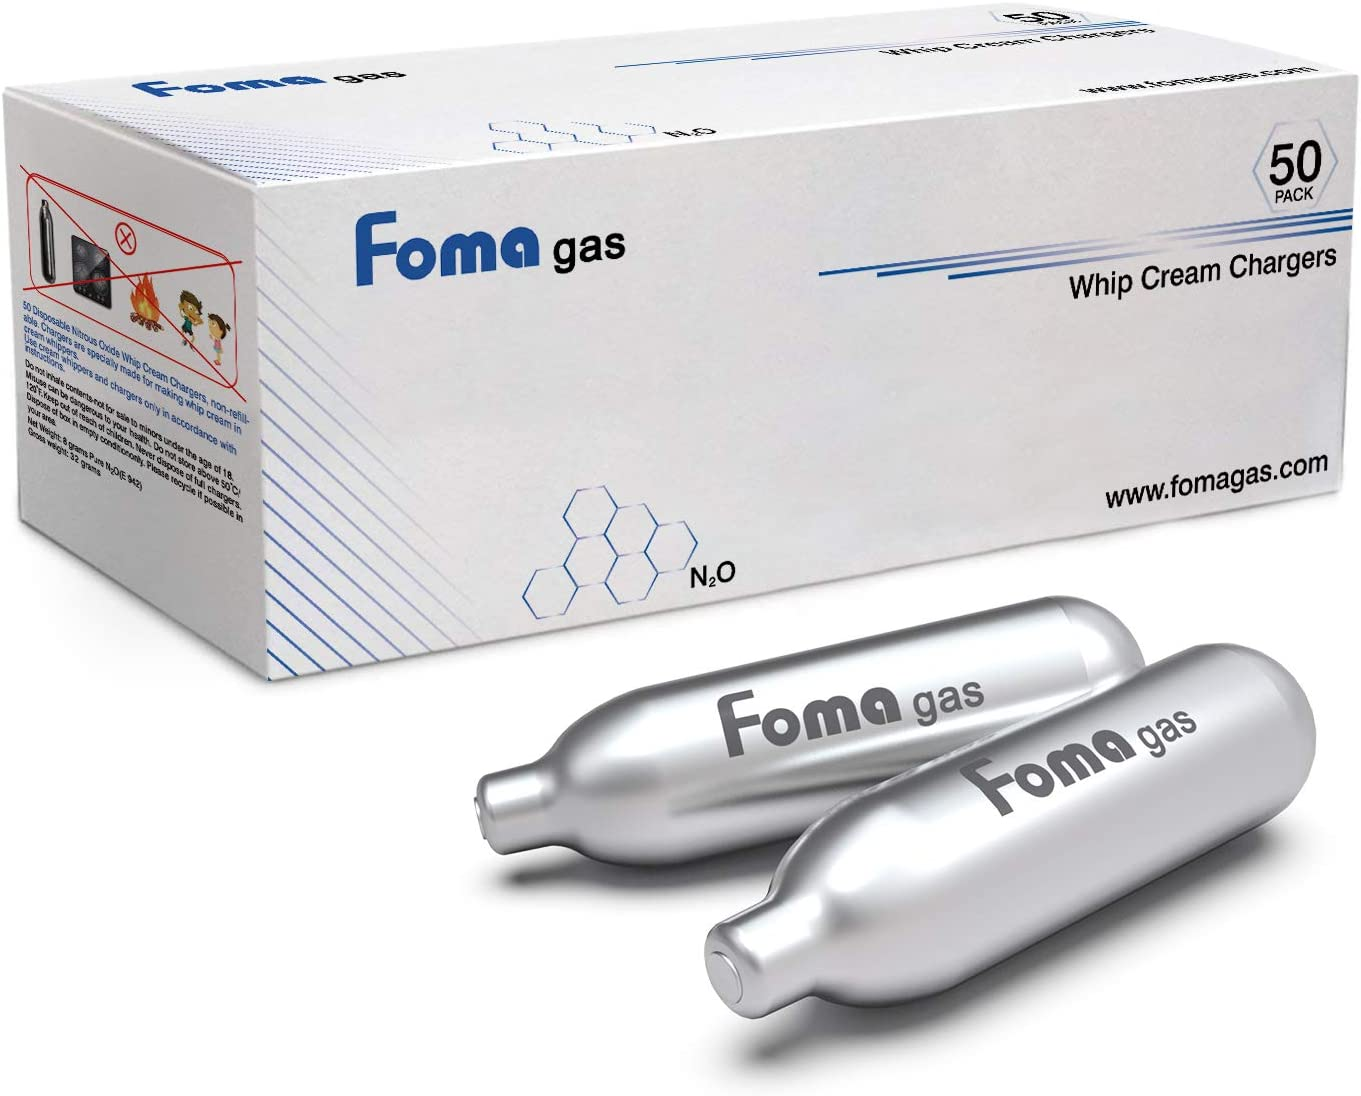 Pack of 50 FOMAGAS Whipped Cream Cartridges